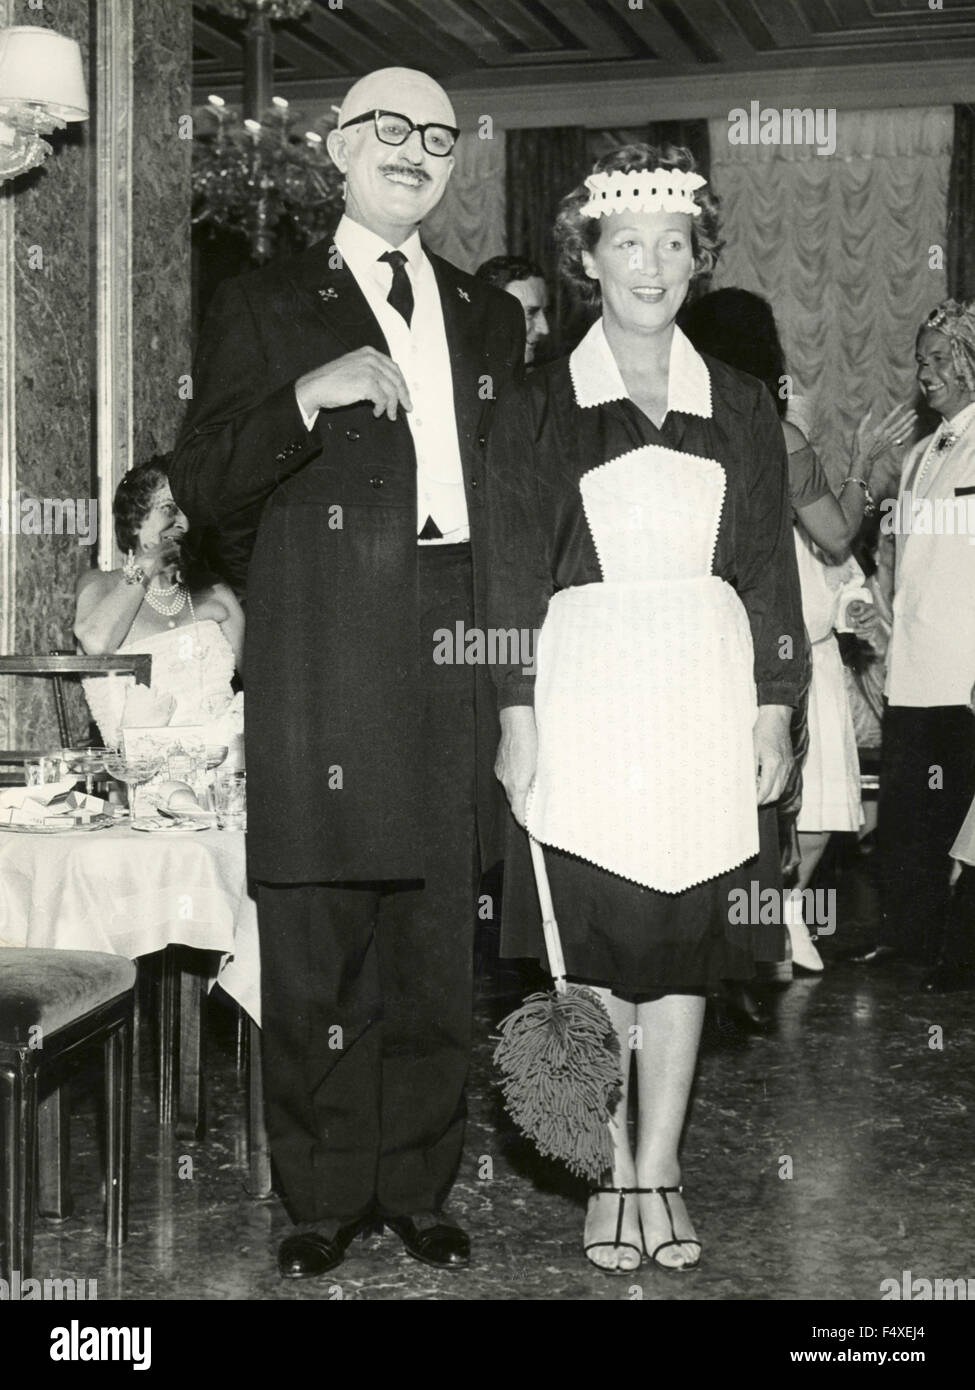 Count Guido Brandolini and Mrs. Drue Heinz to dance at Elsa Maxwell's party at the Danieli, Venice, Italy - Stock Image